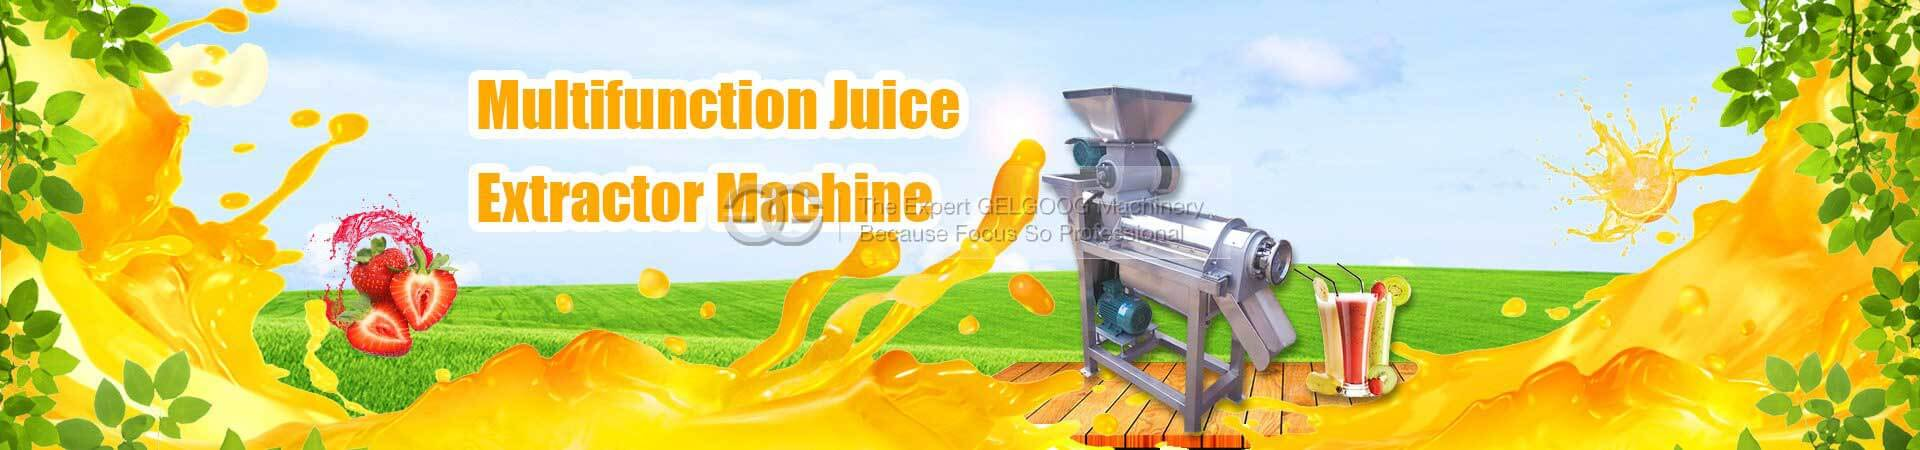 Fruit Vegetable Jucie Extractor Machine